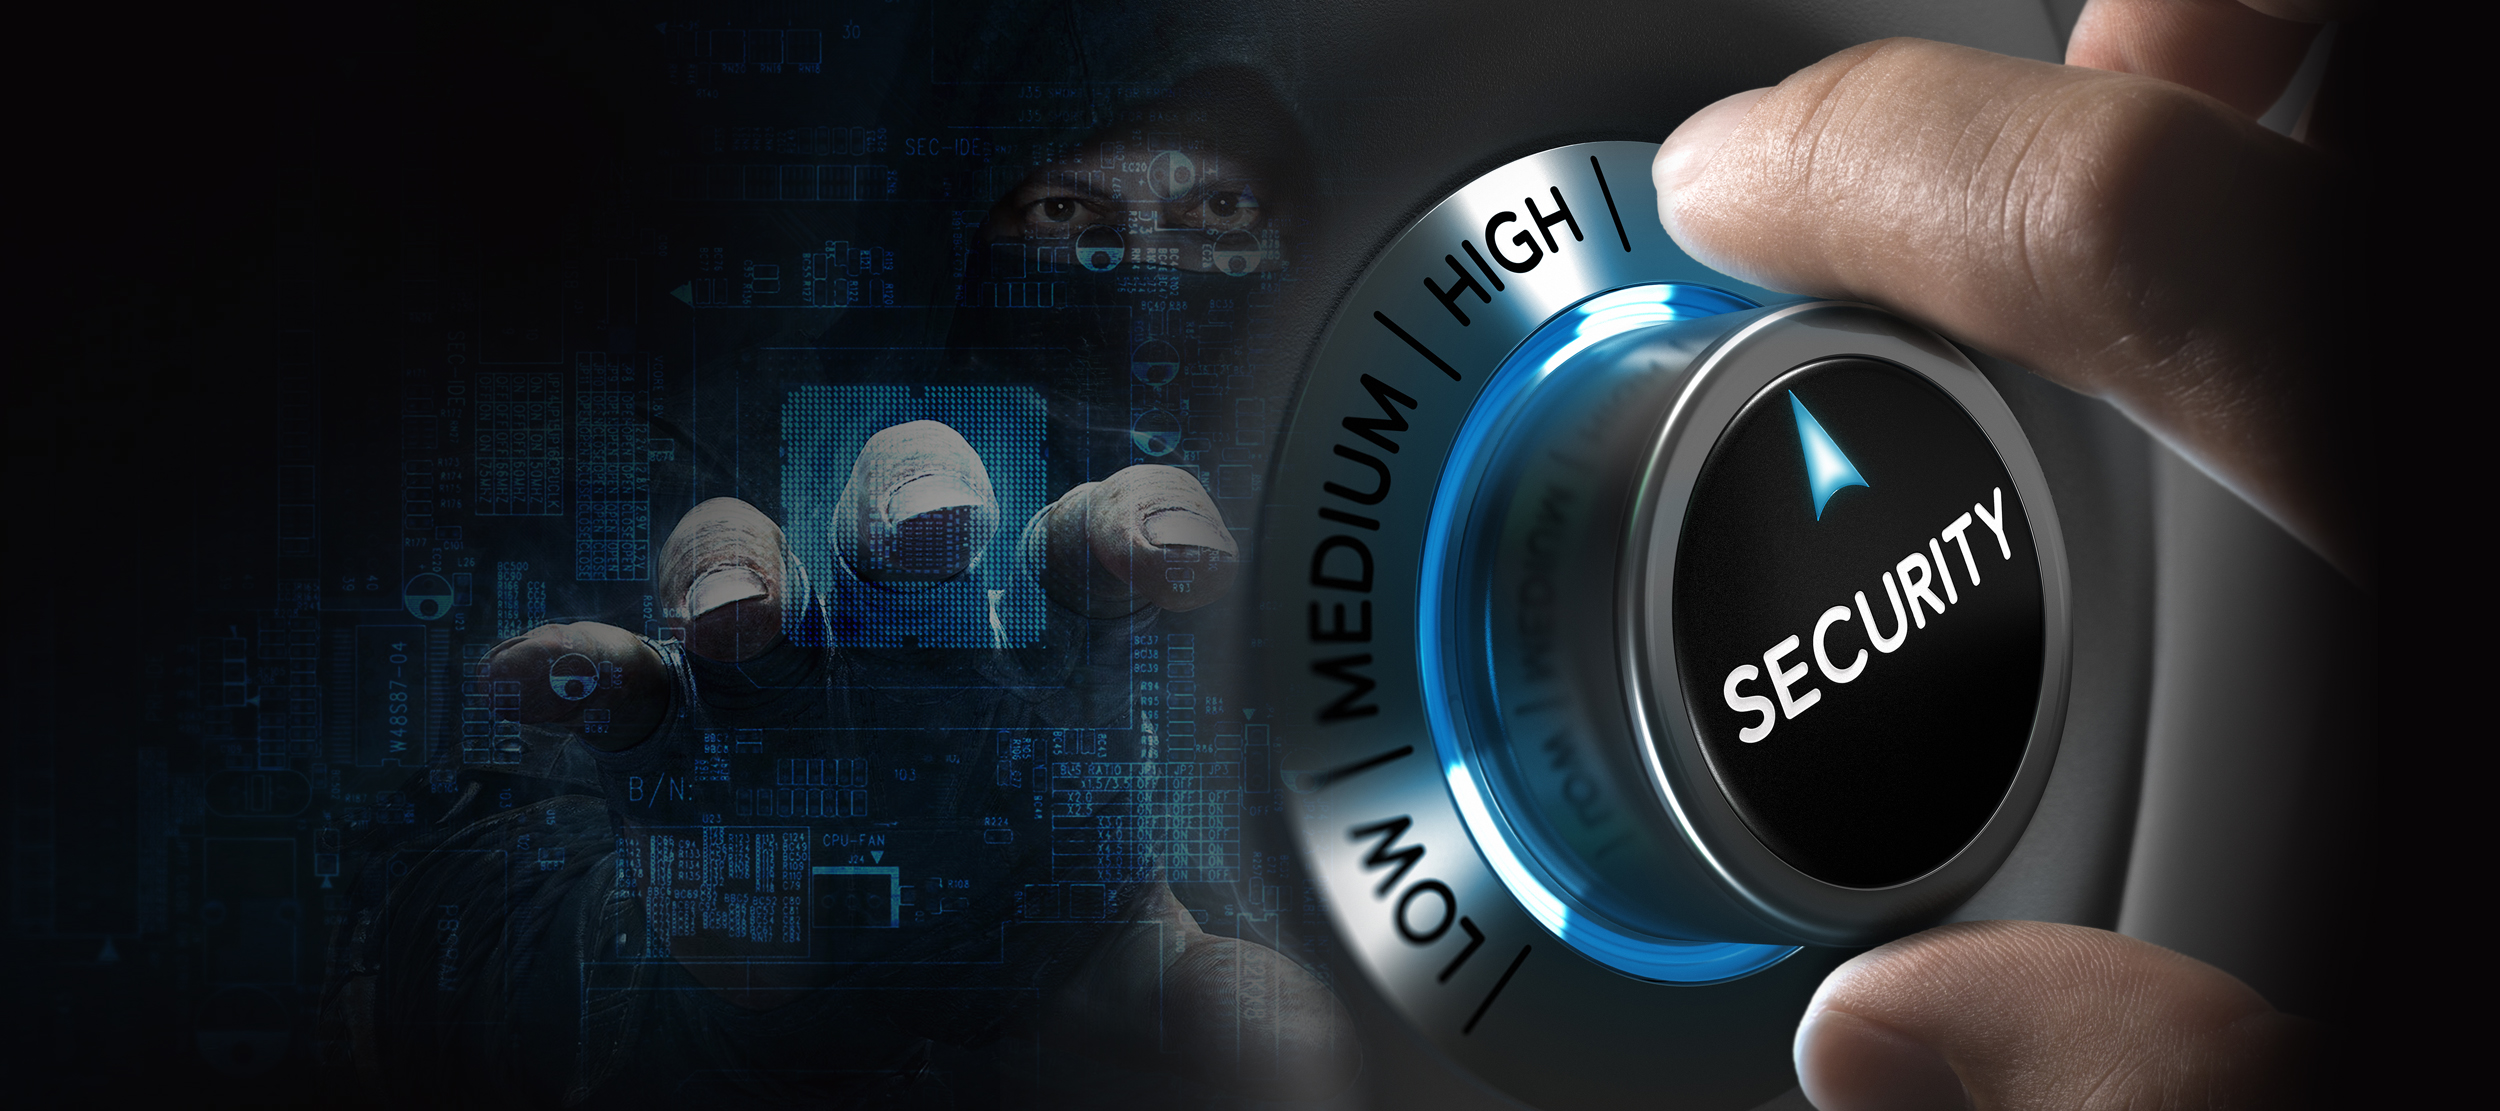 Network Security Services Company